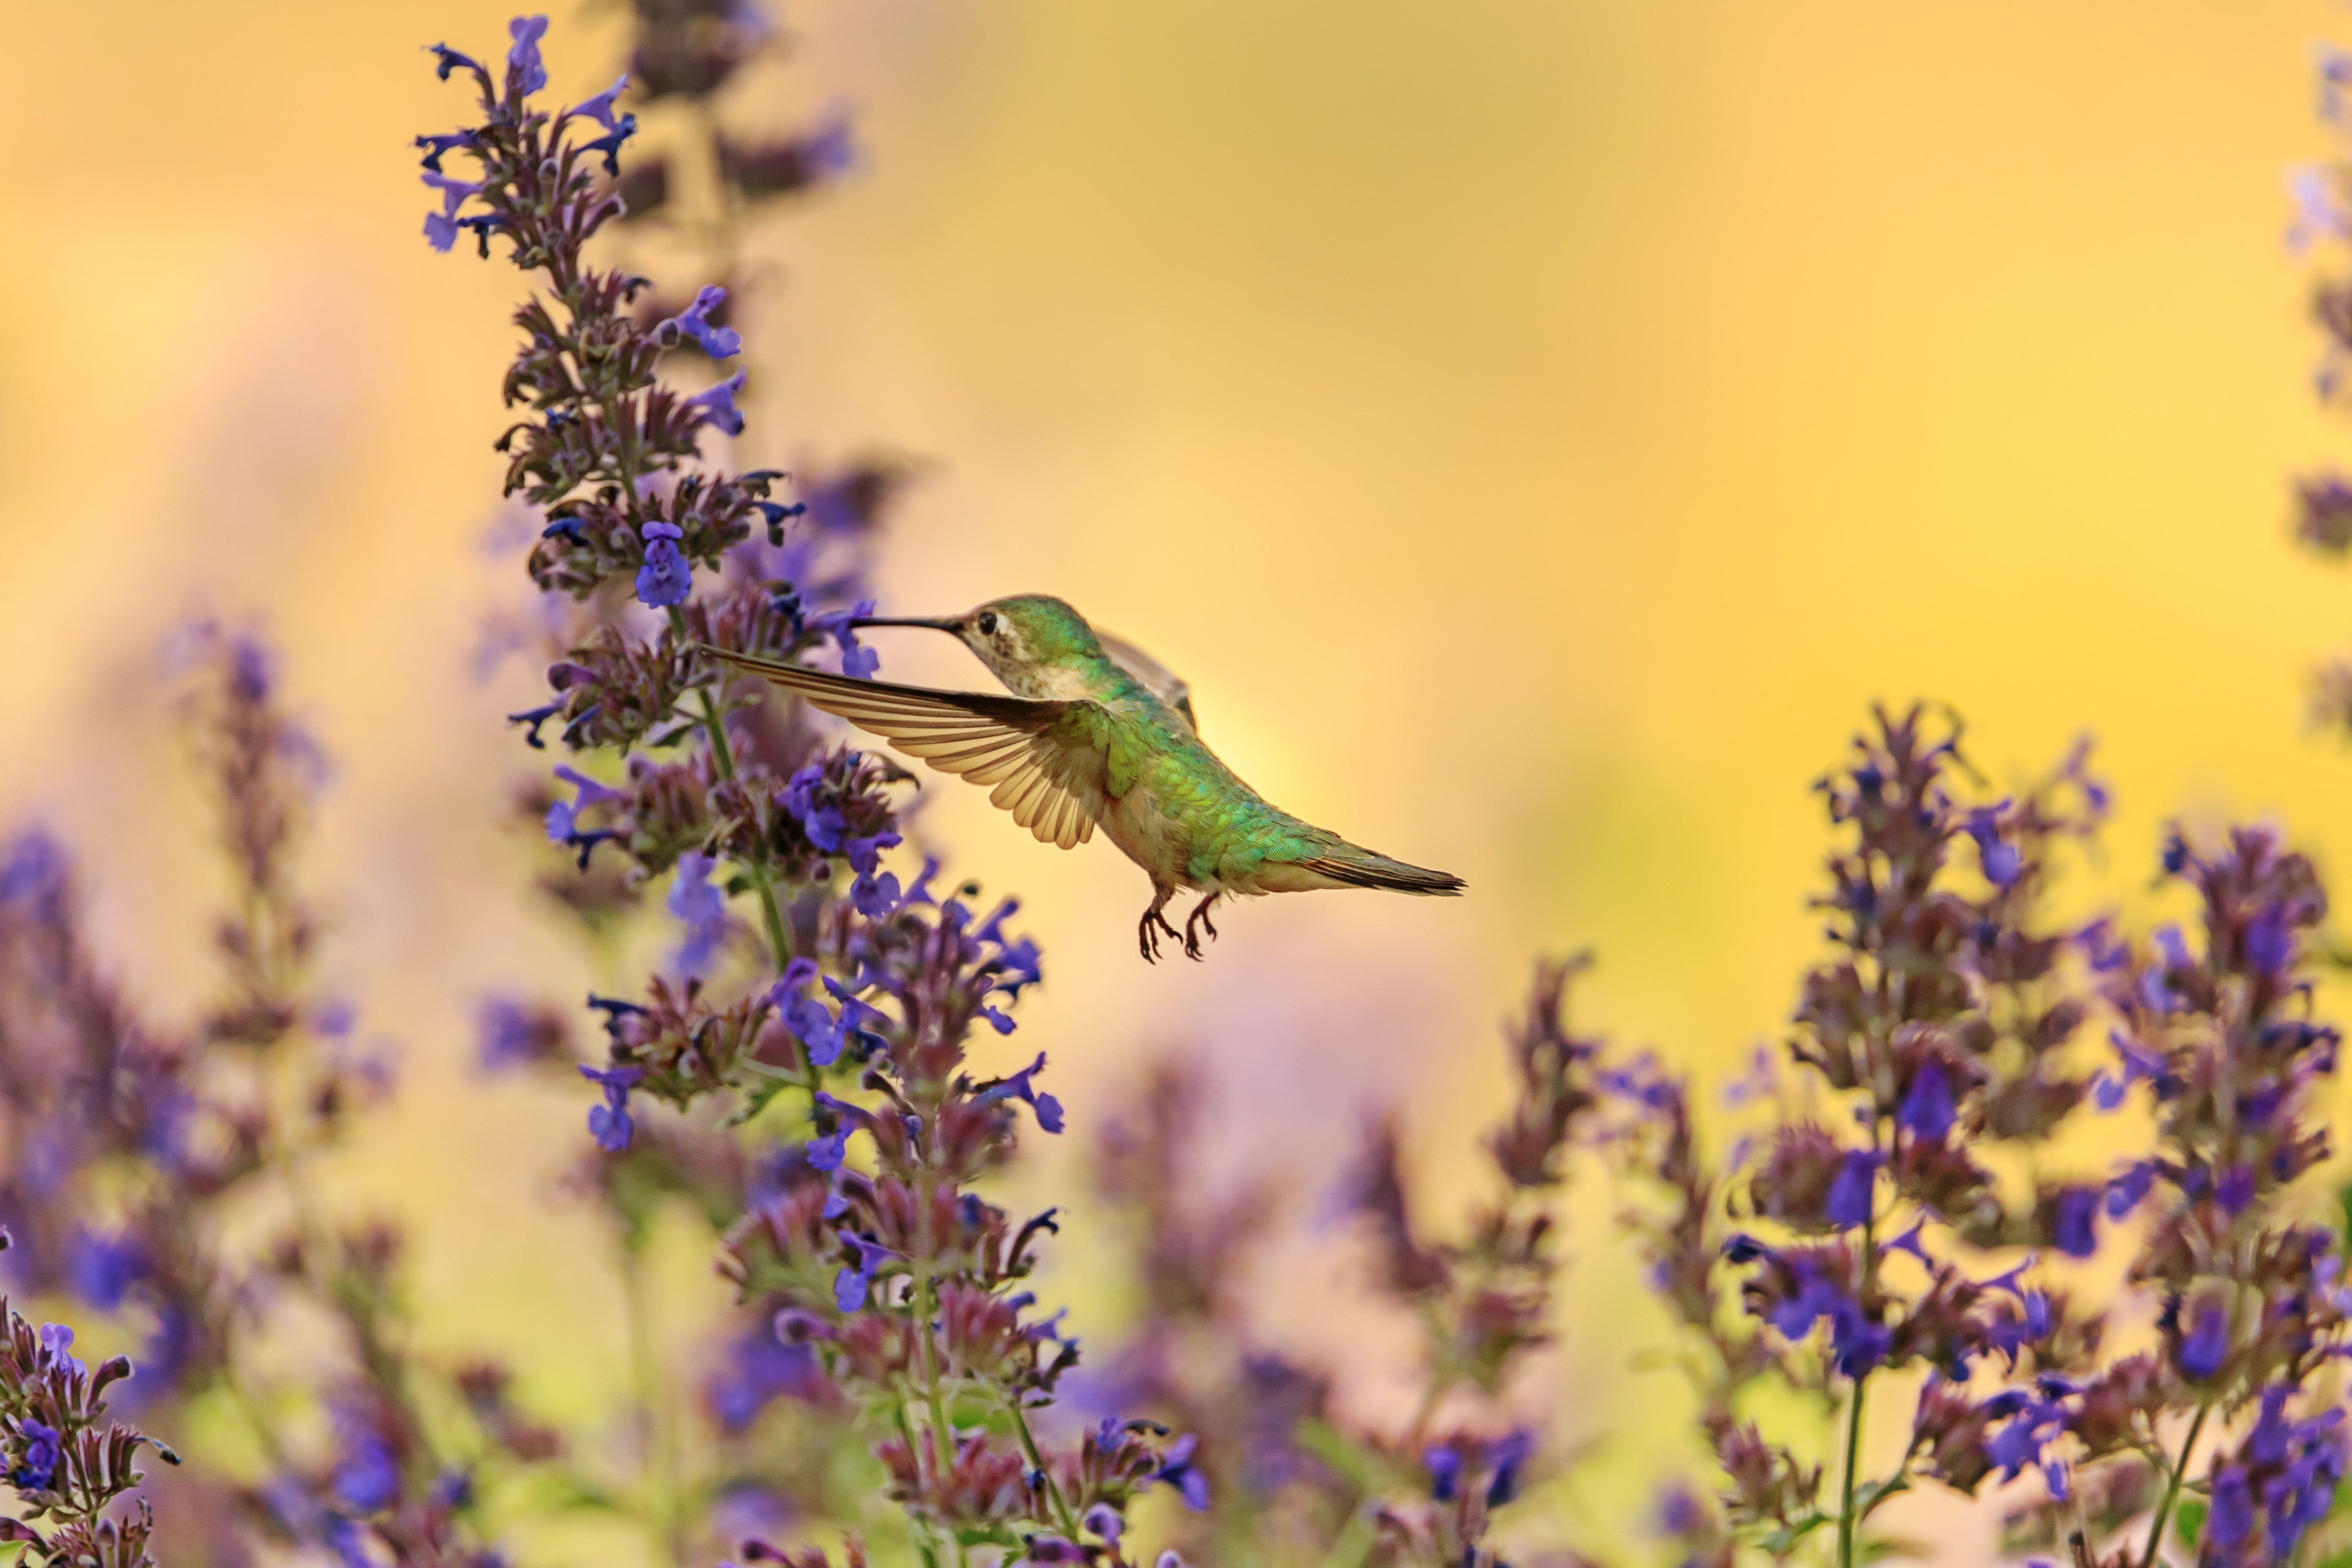 Green Hummingbird Flying Near at Lavender Flower